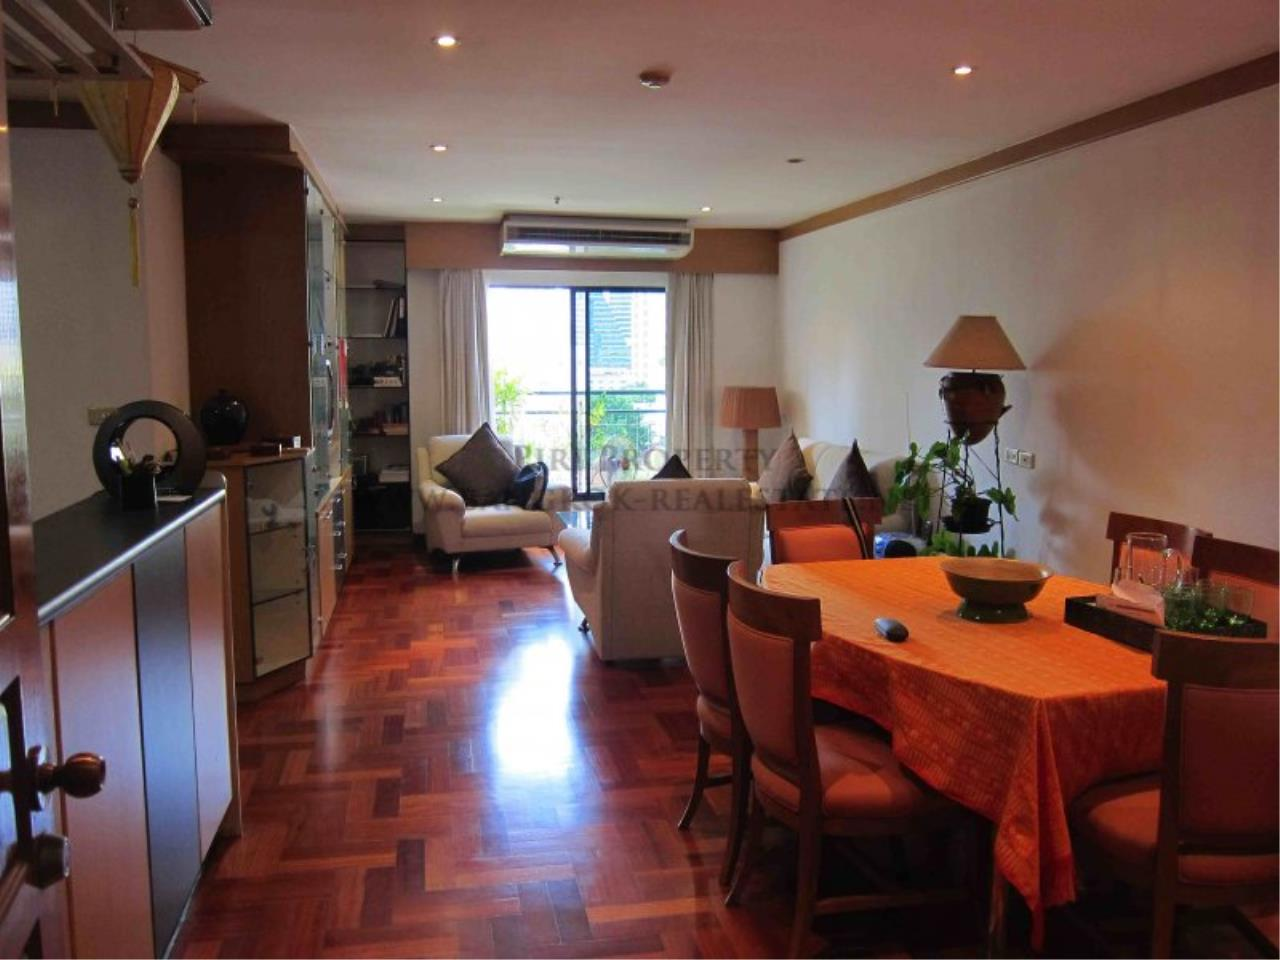 Piri Property Agency's Liberty Park 2 Condominium - Fully furnished 2 Bedroom Condo for Rent 12